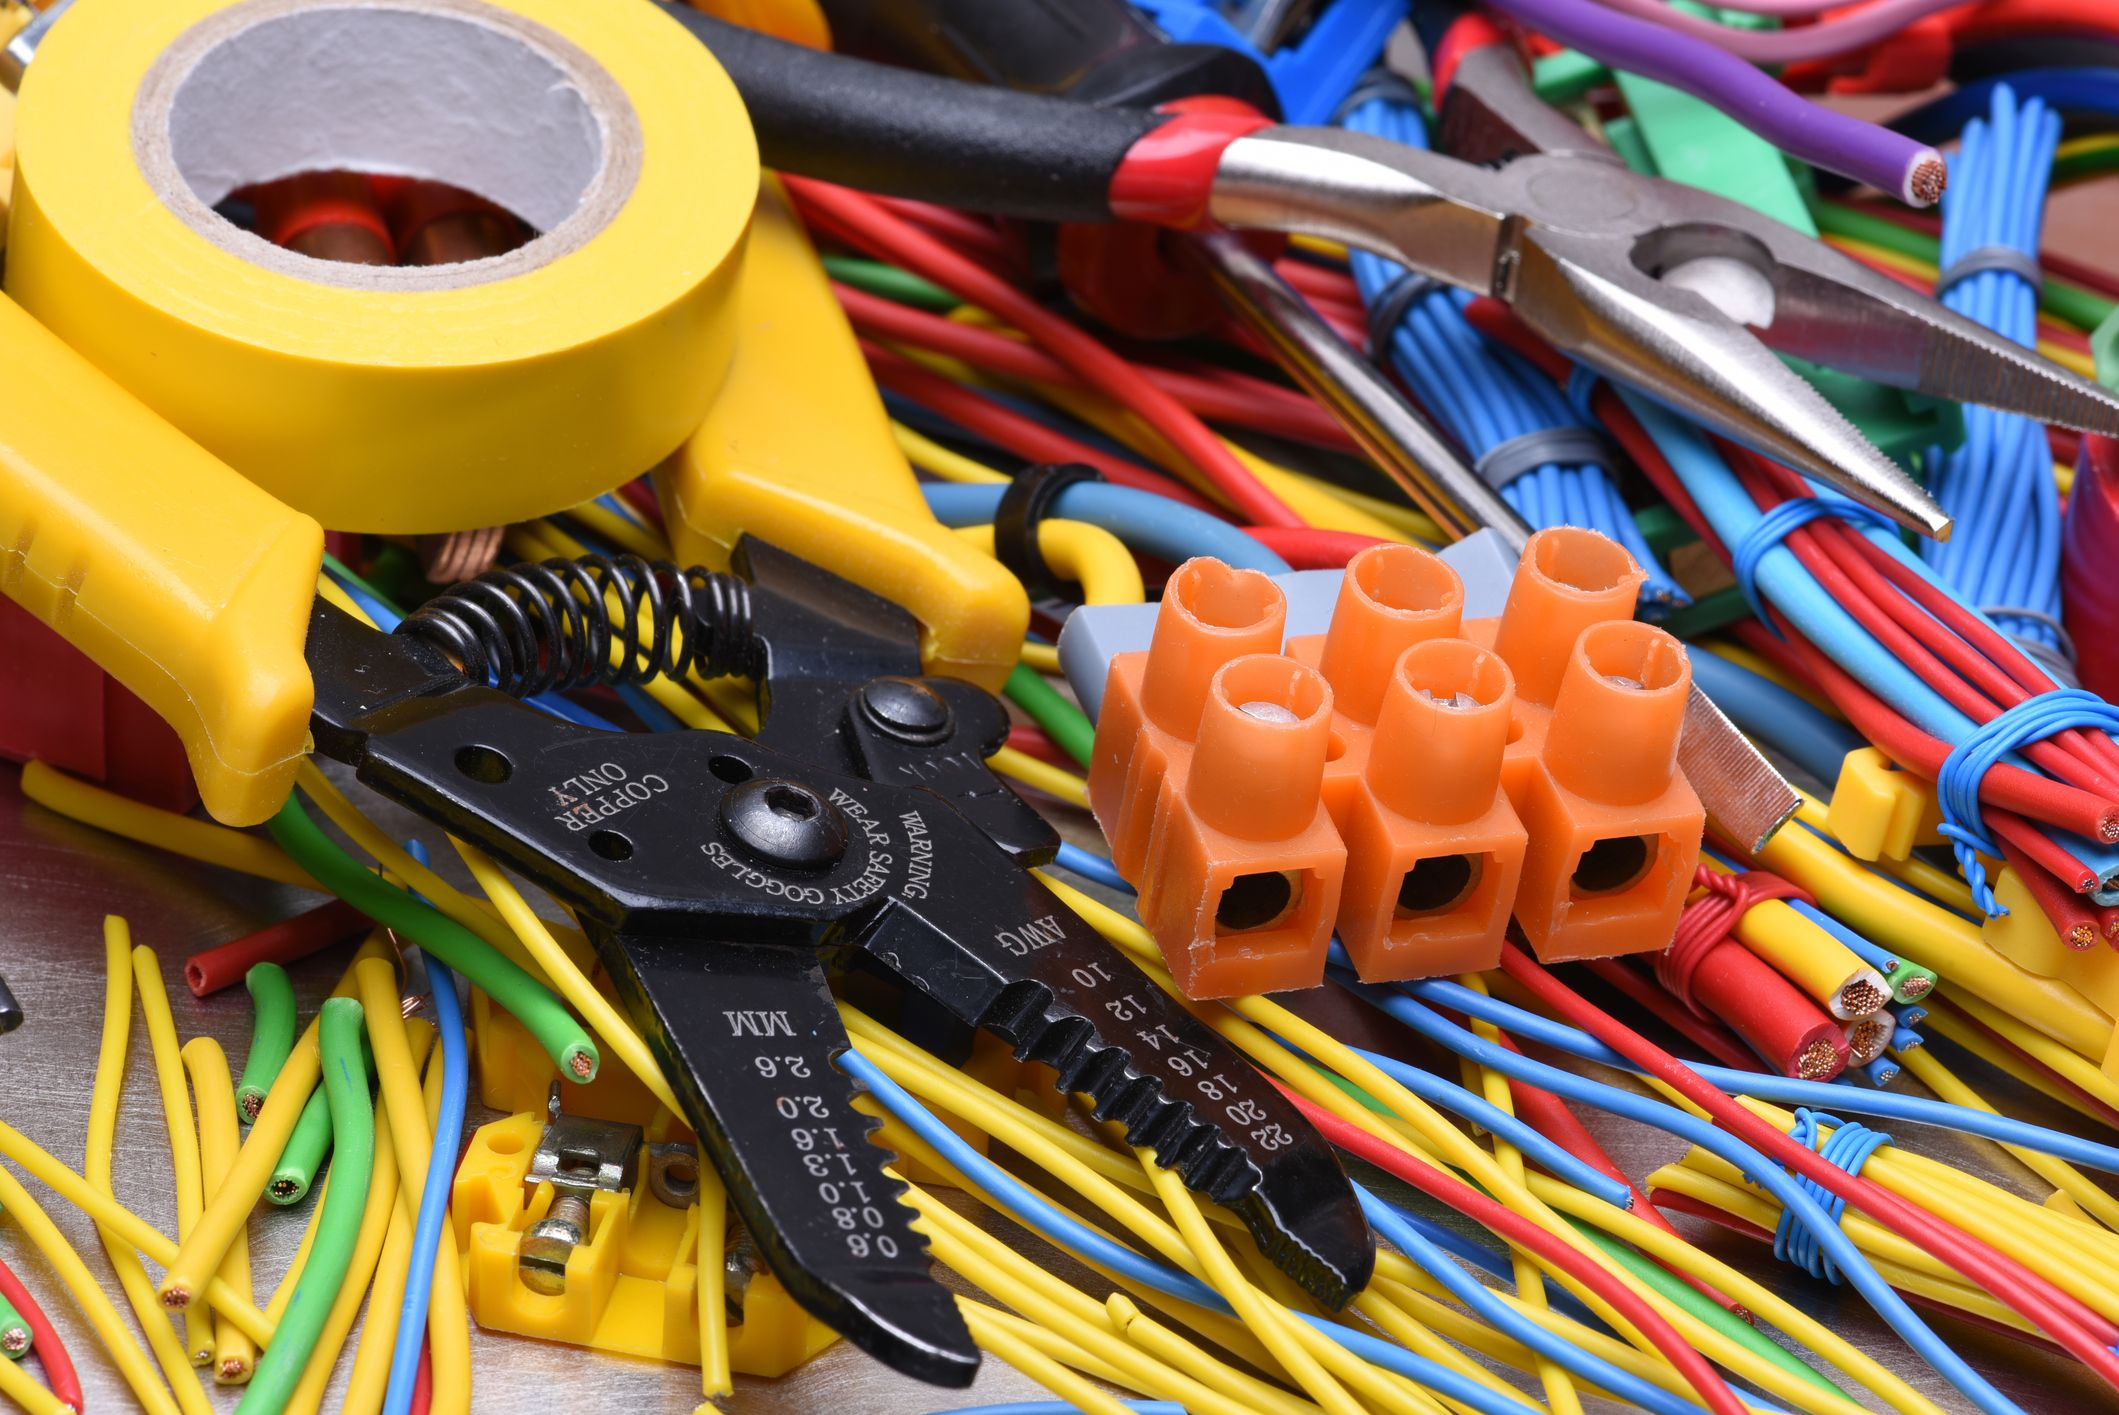 How much do electricians charge? Electrical maintenance